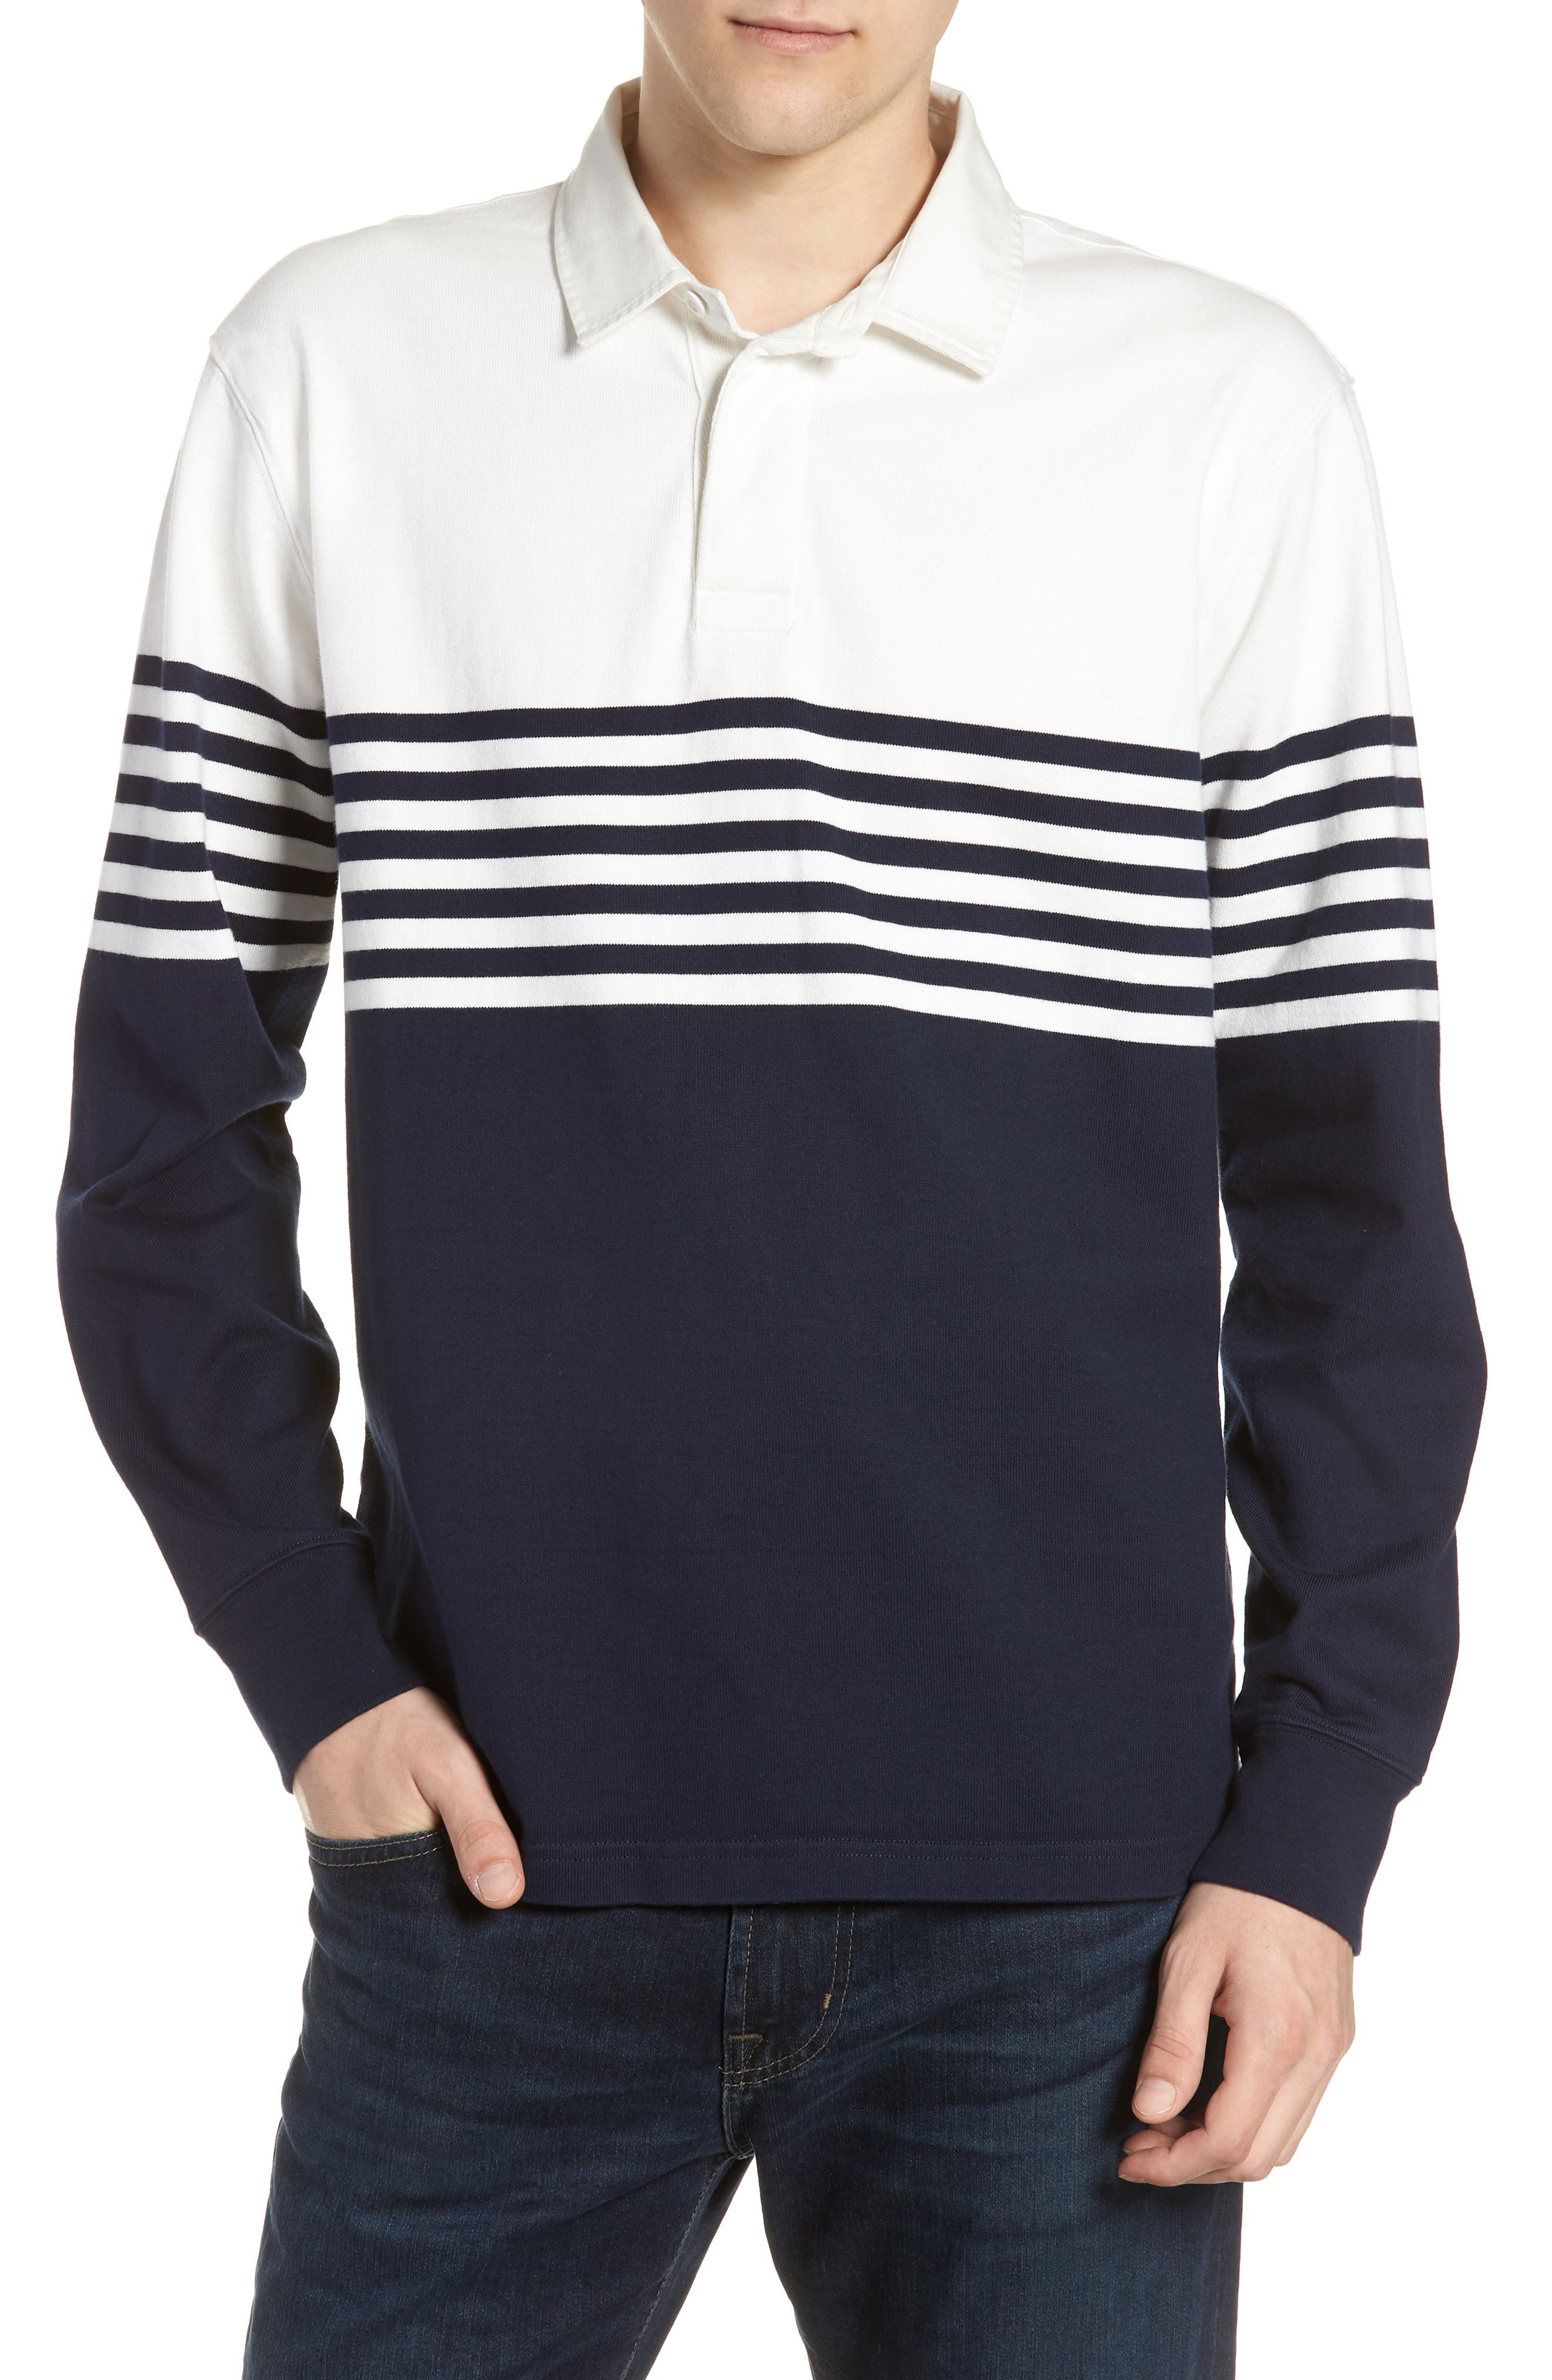 1984 Colorblock Stripe Rugby Shirt,                             Main thumbnail 1, color,                             400